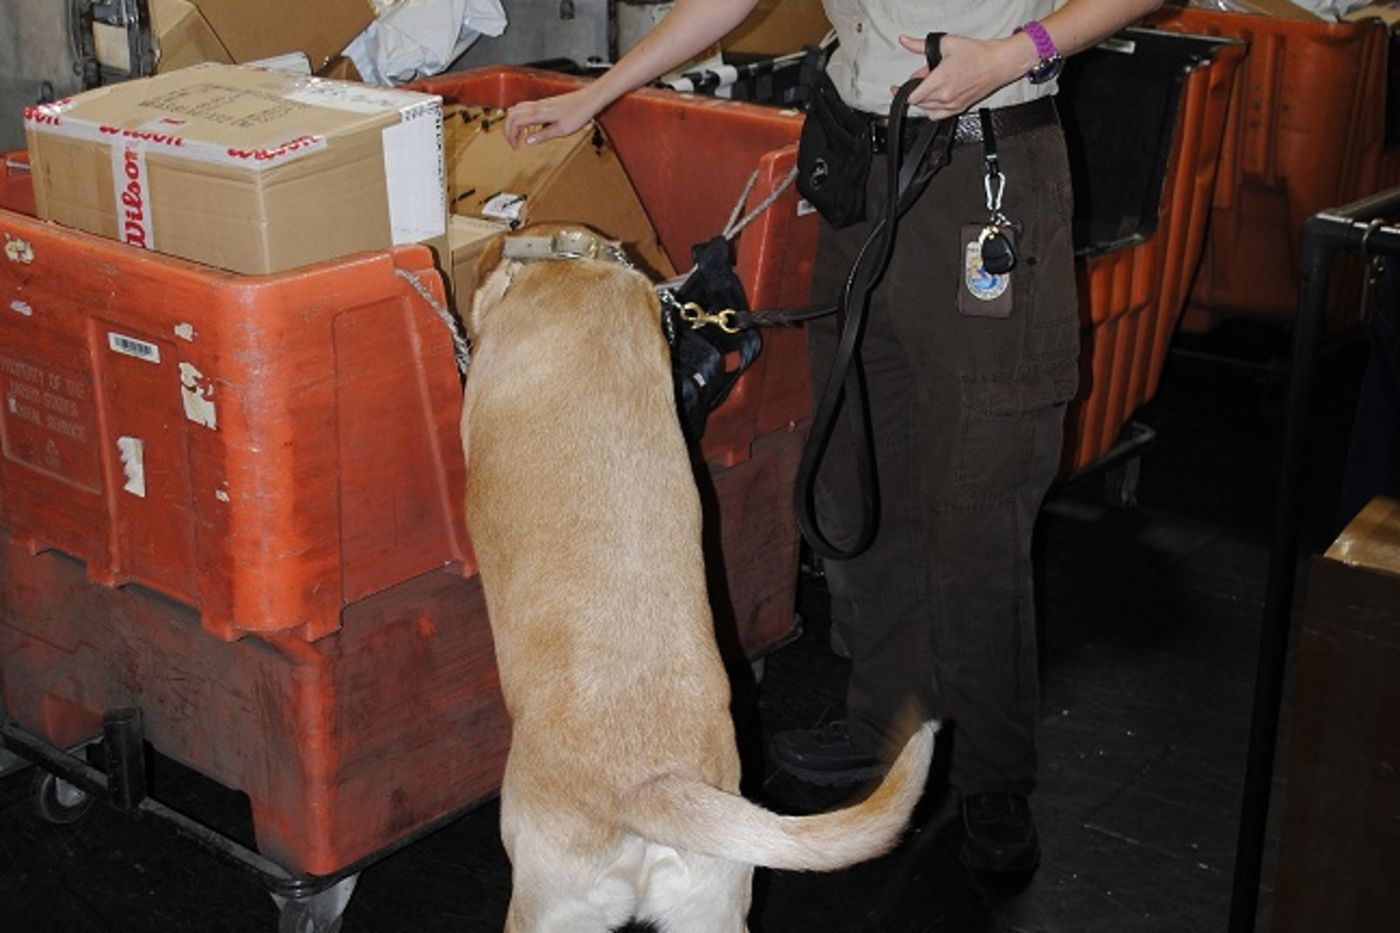 A woman in law enforcement uniform with a dog sniffing packages